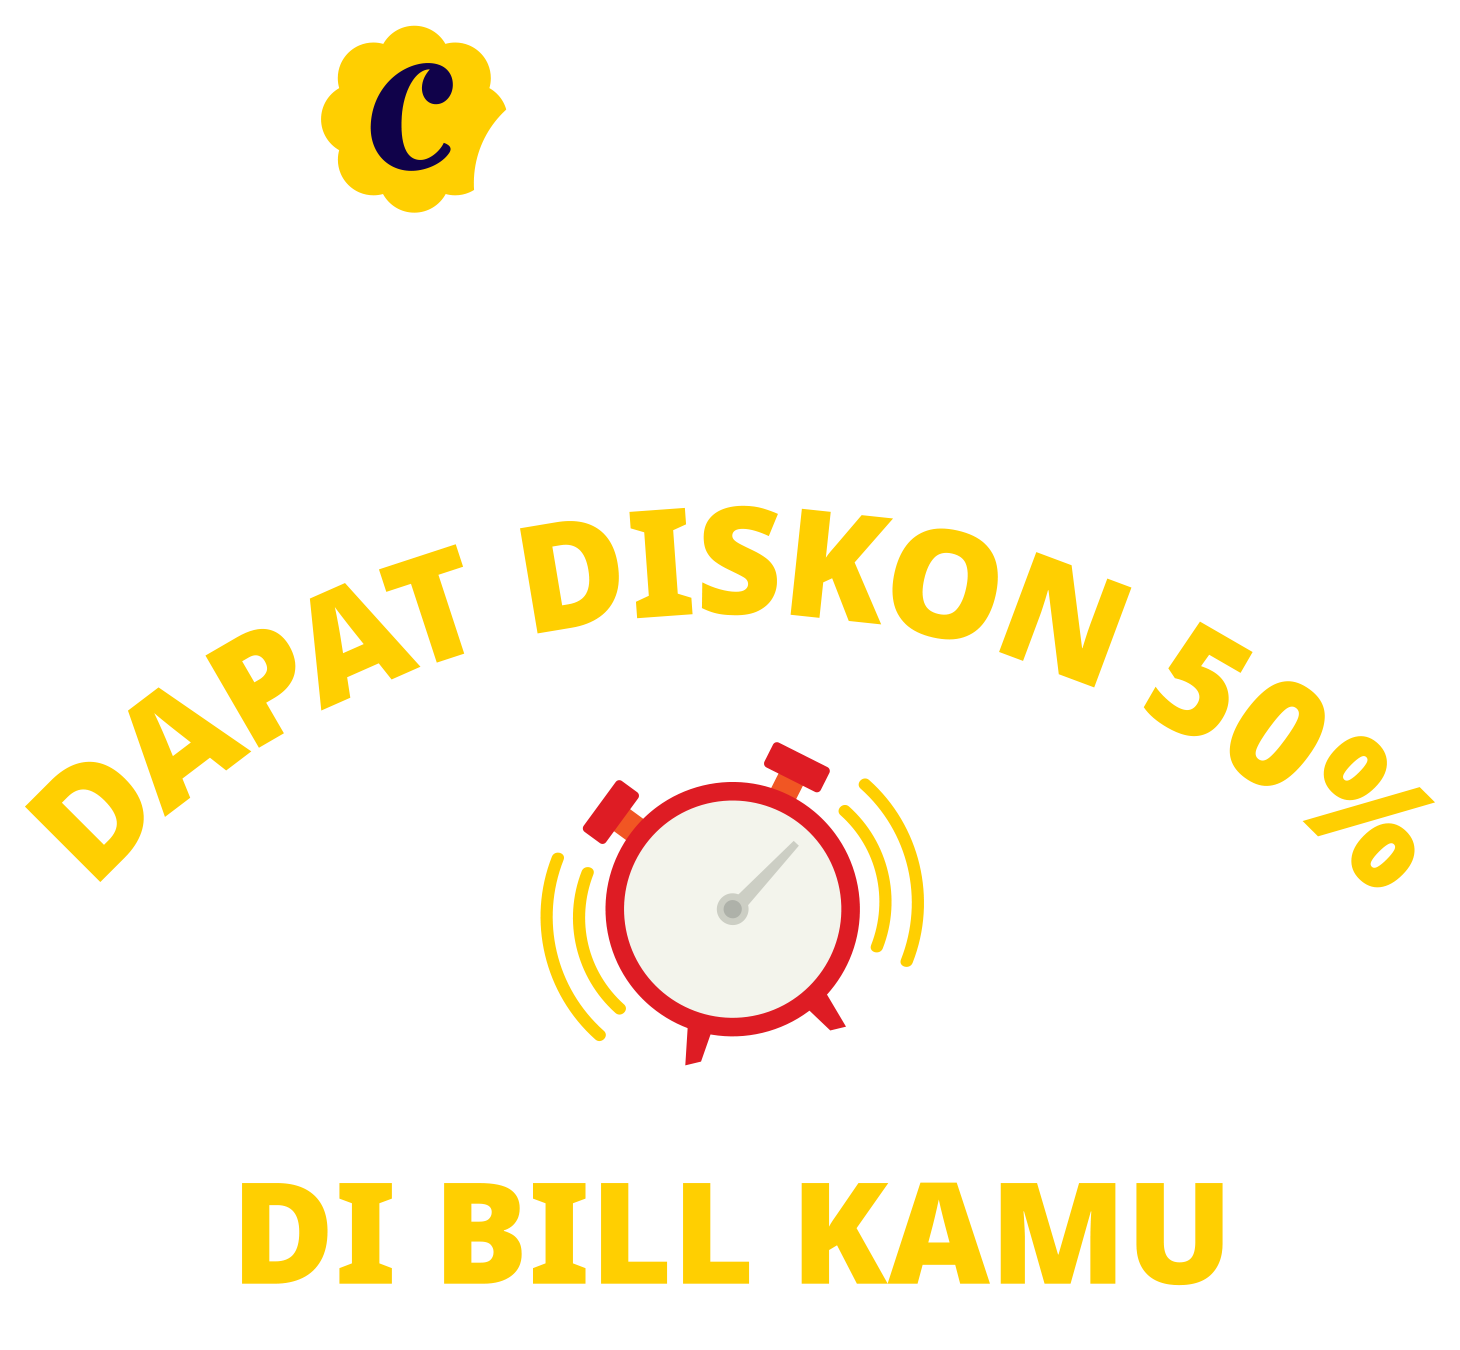 Chope Vouchers